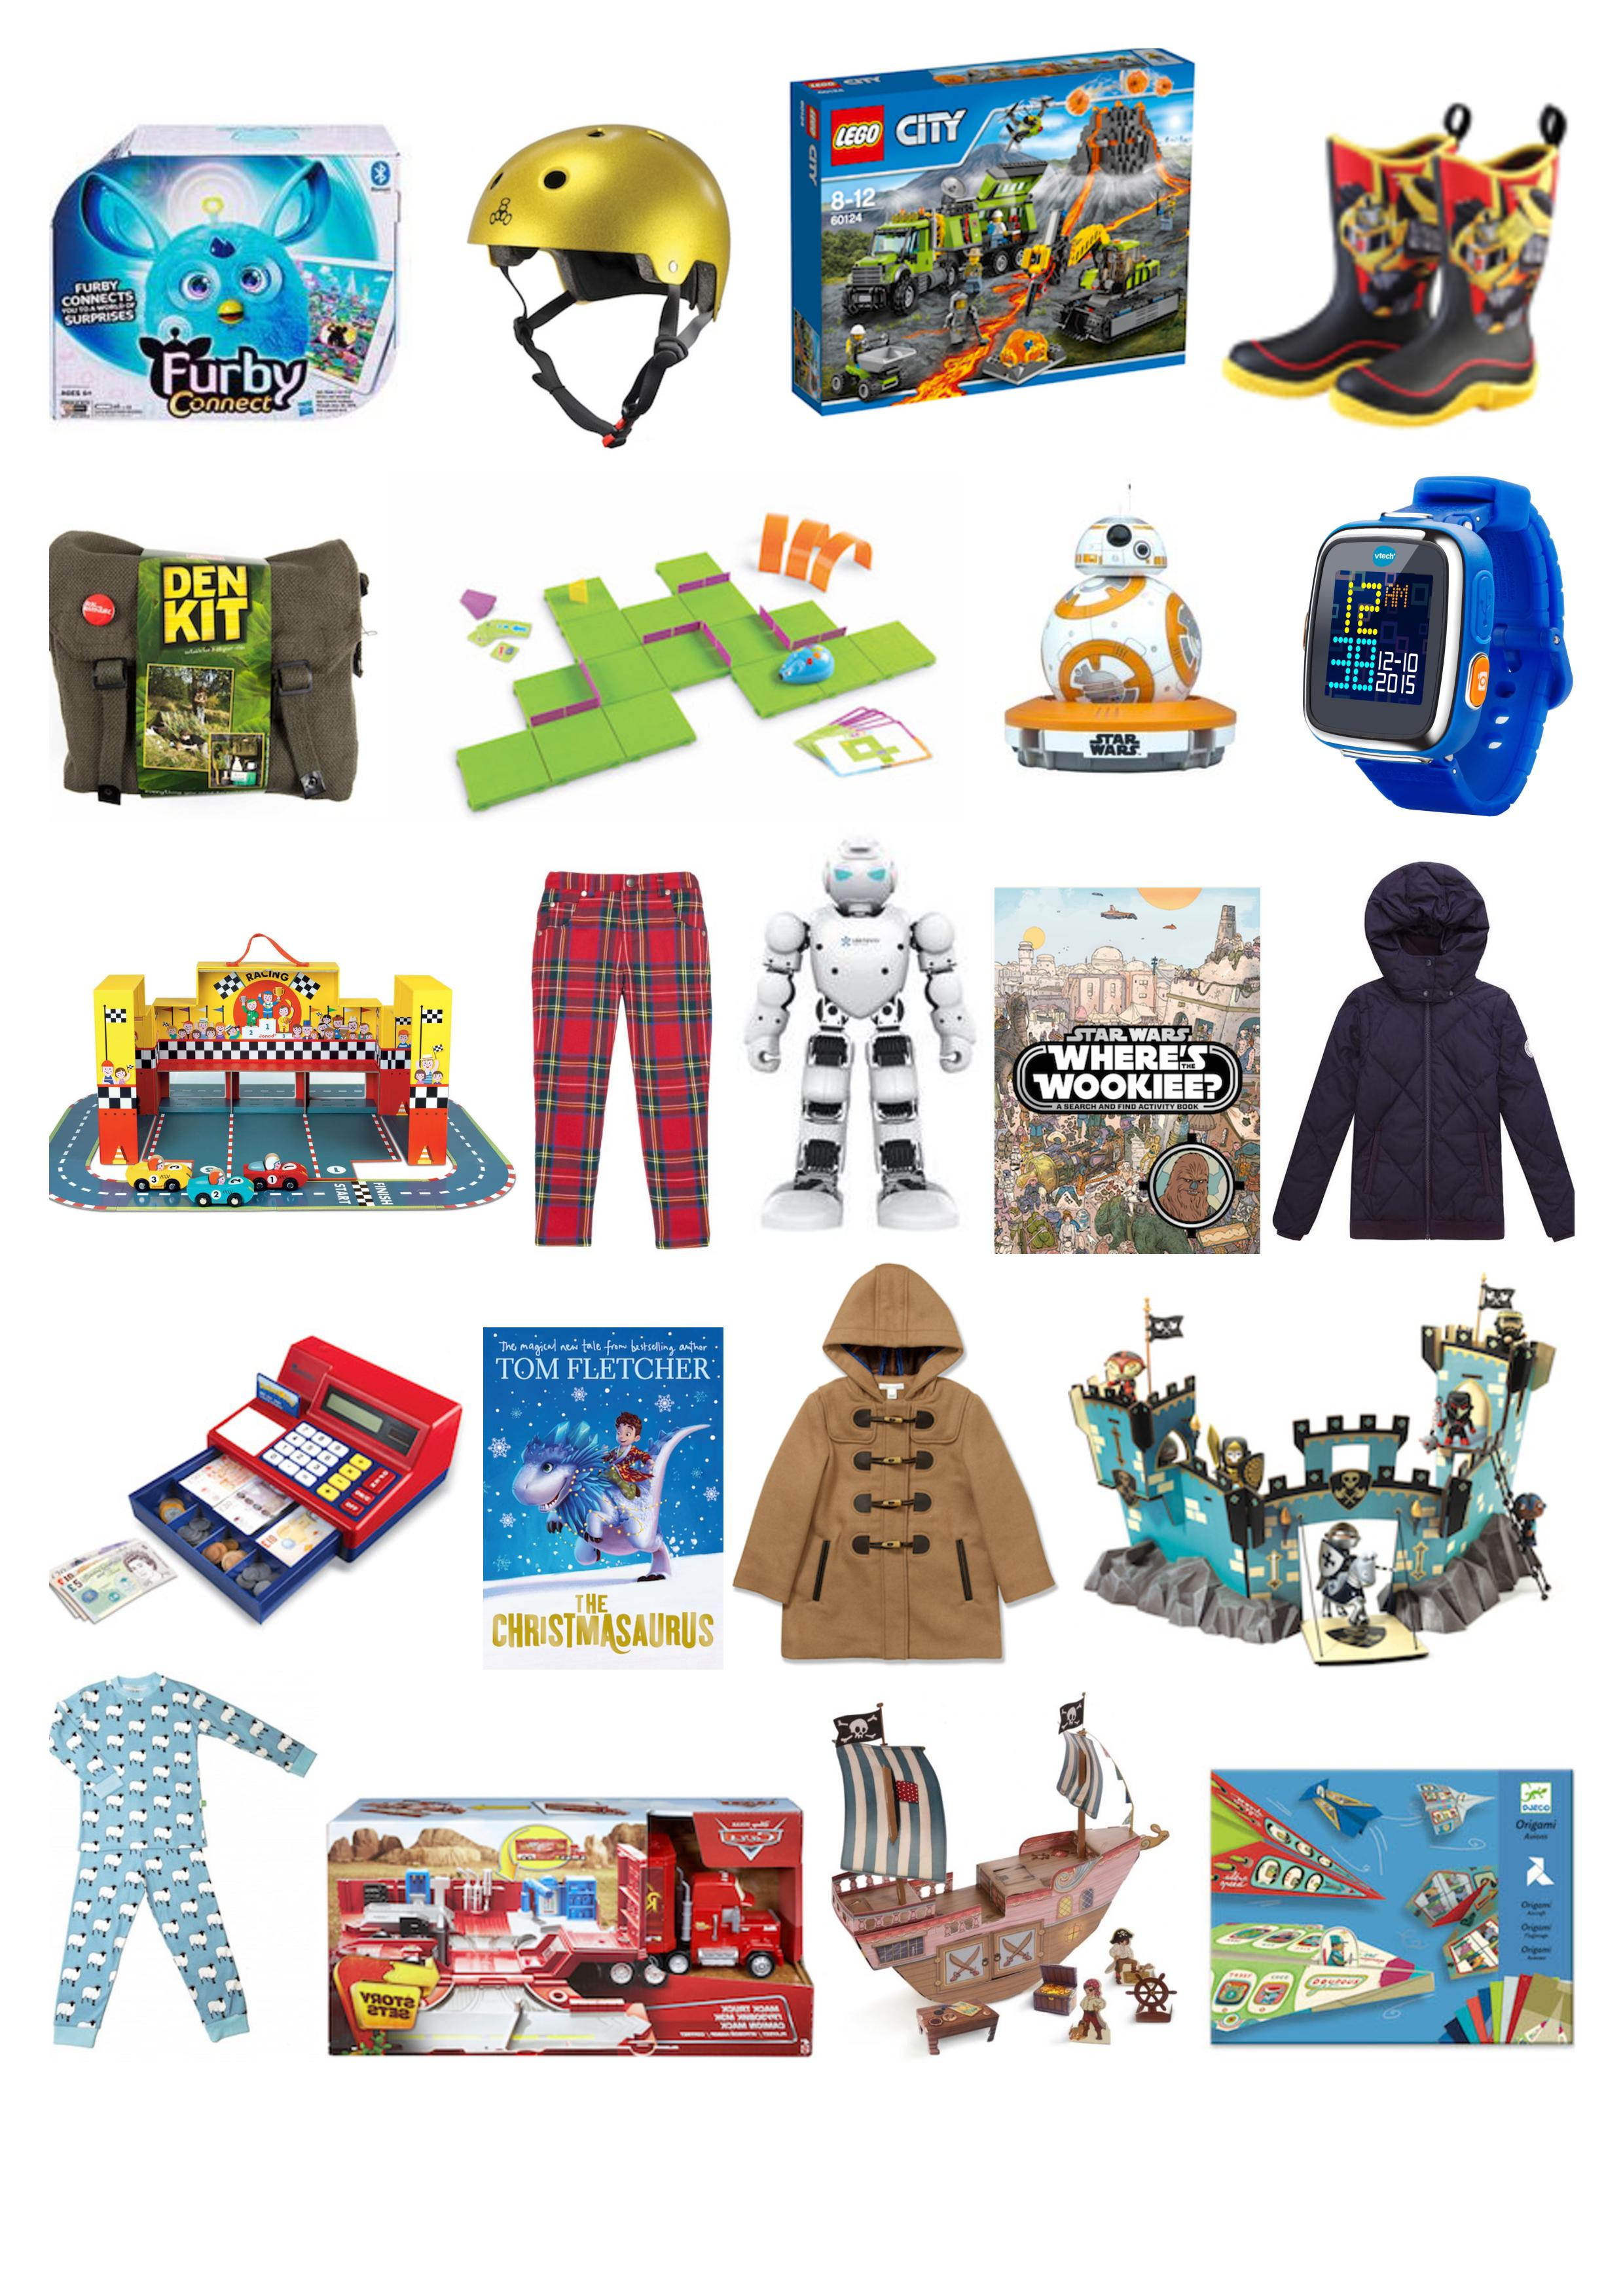 Boys Christmas Present.22 Christmas Gift Ideas For Boys Mummy In The City